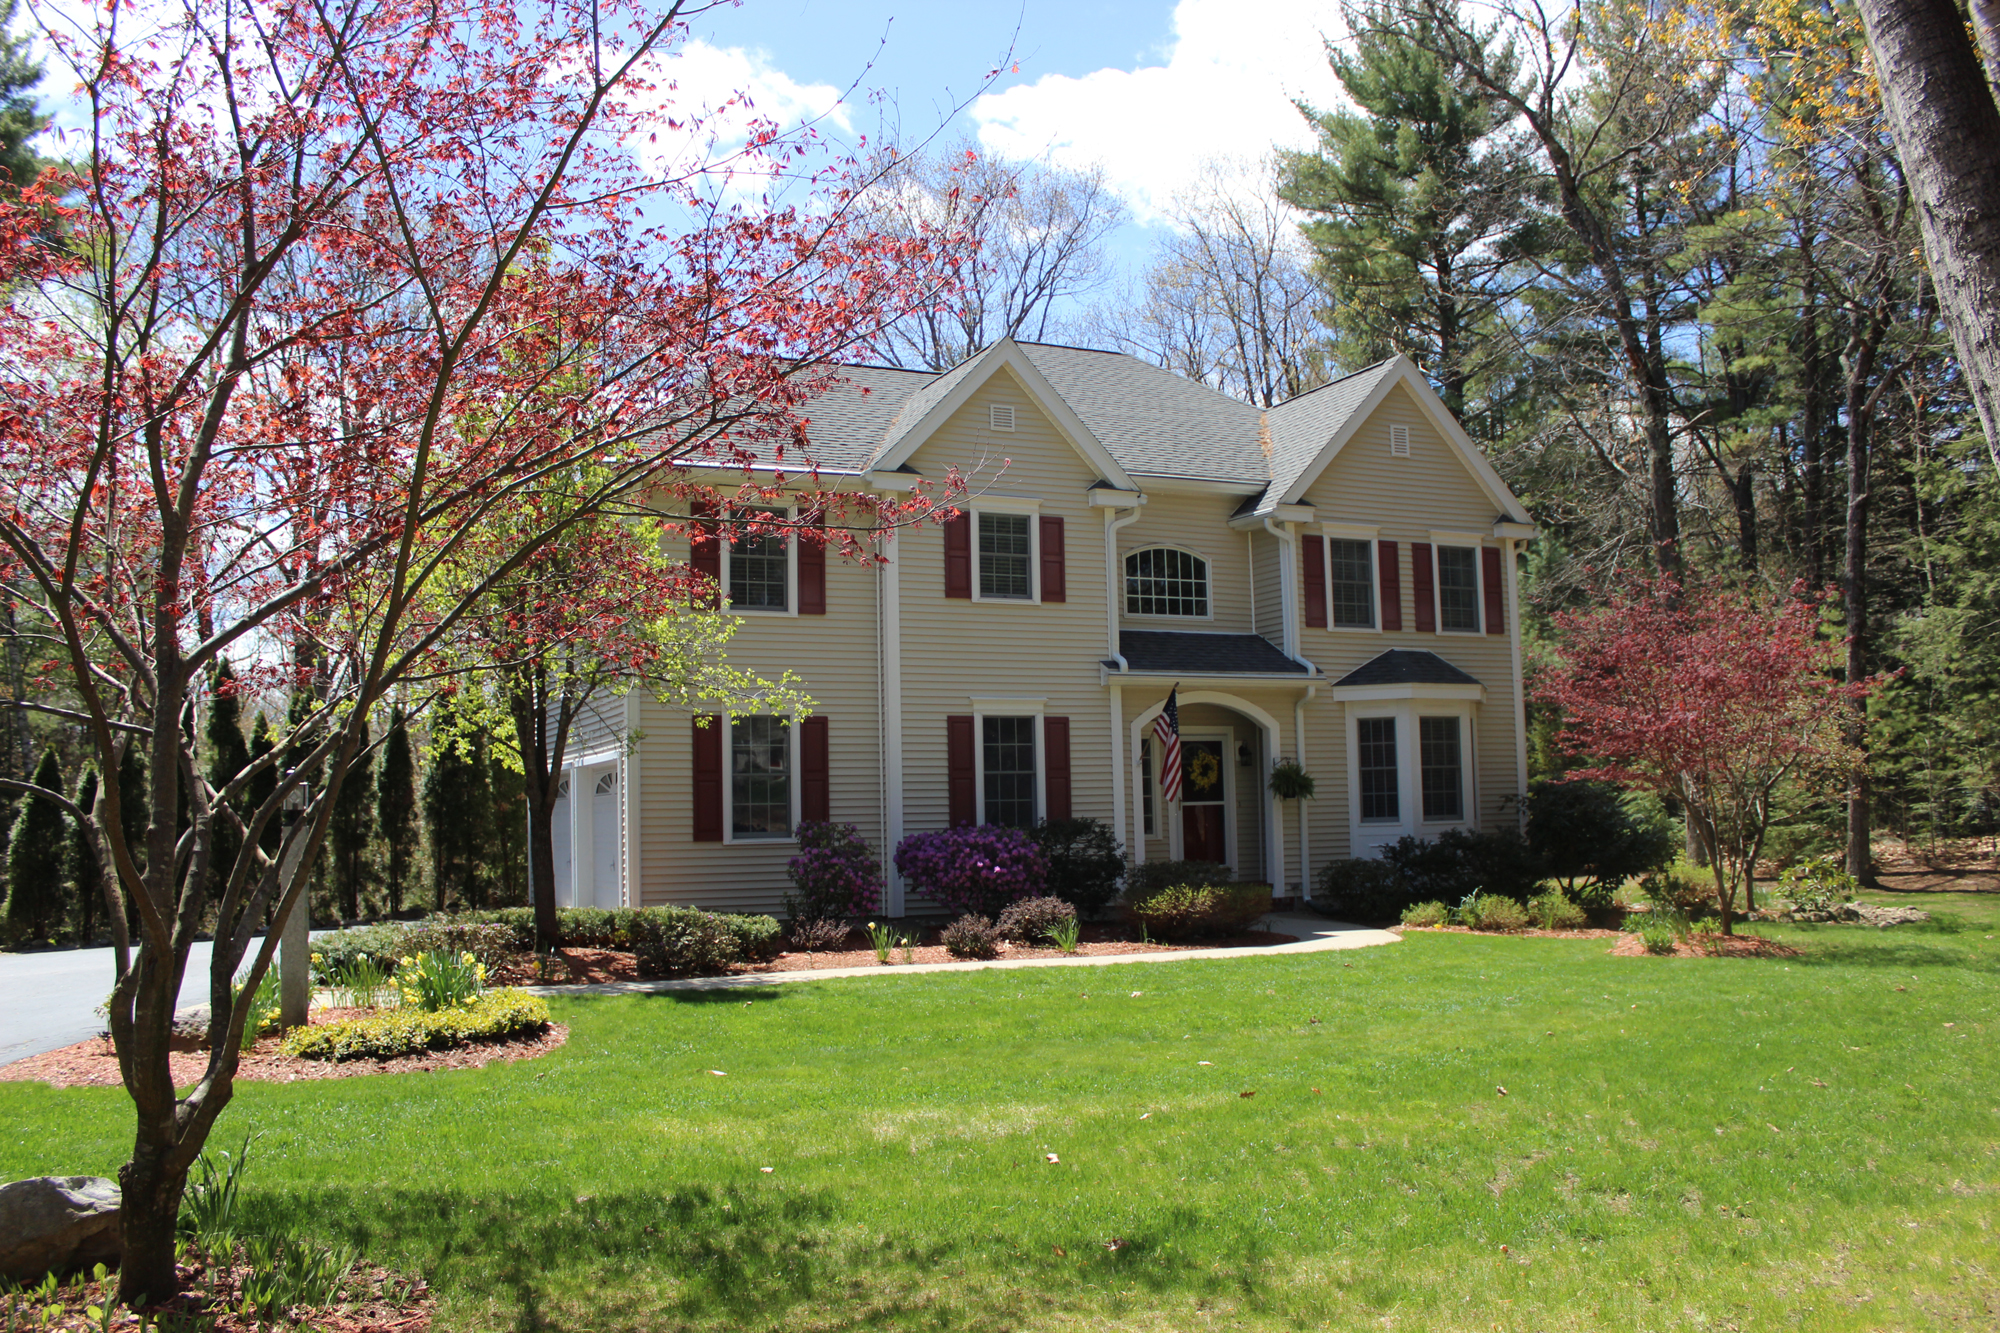 Single Family Home for Sale at 51 Dunlap, Bedford 51 Dunlap Dr Bedford, New Hampshire, 03110 United States